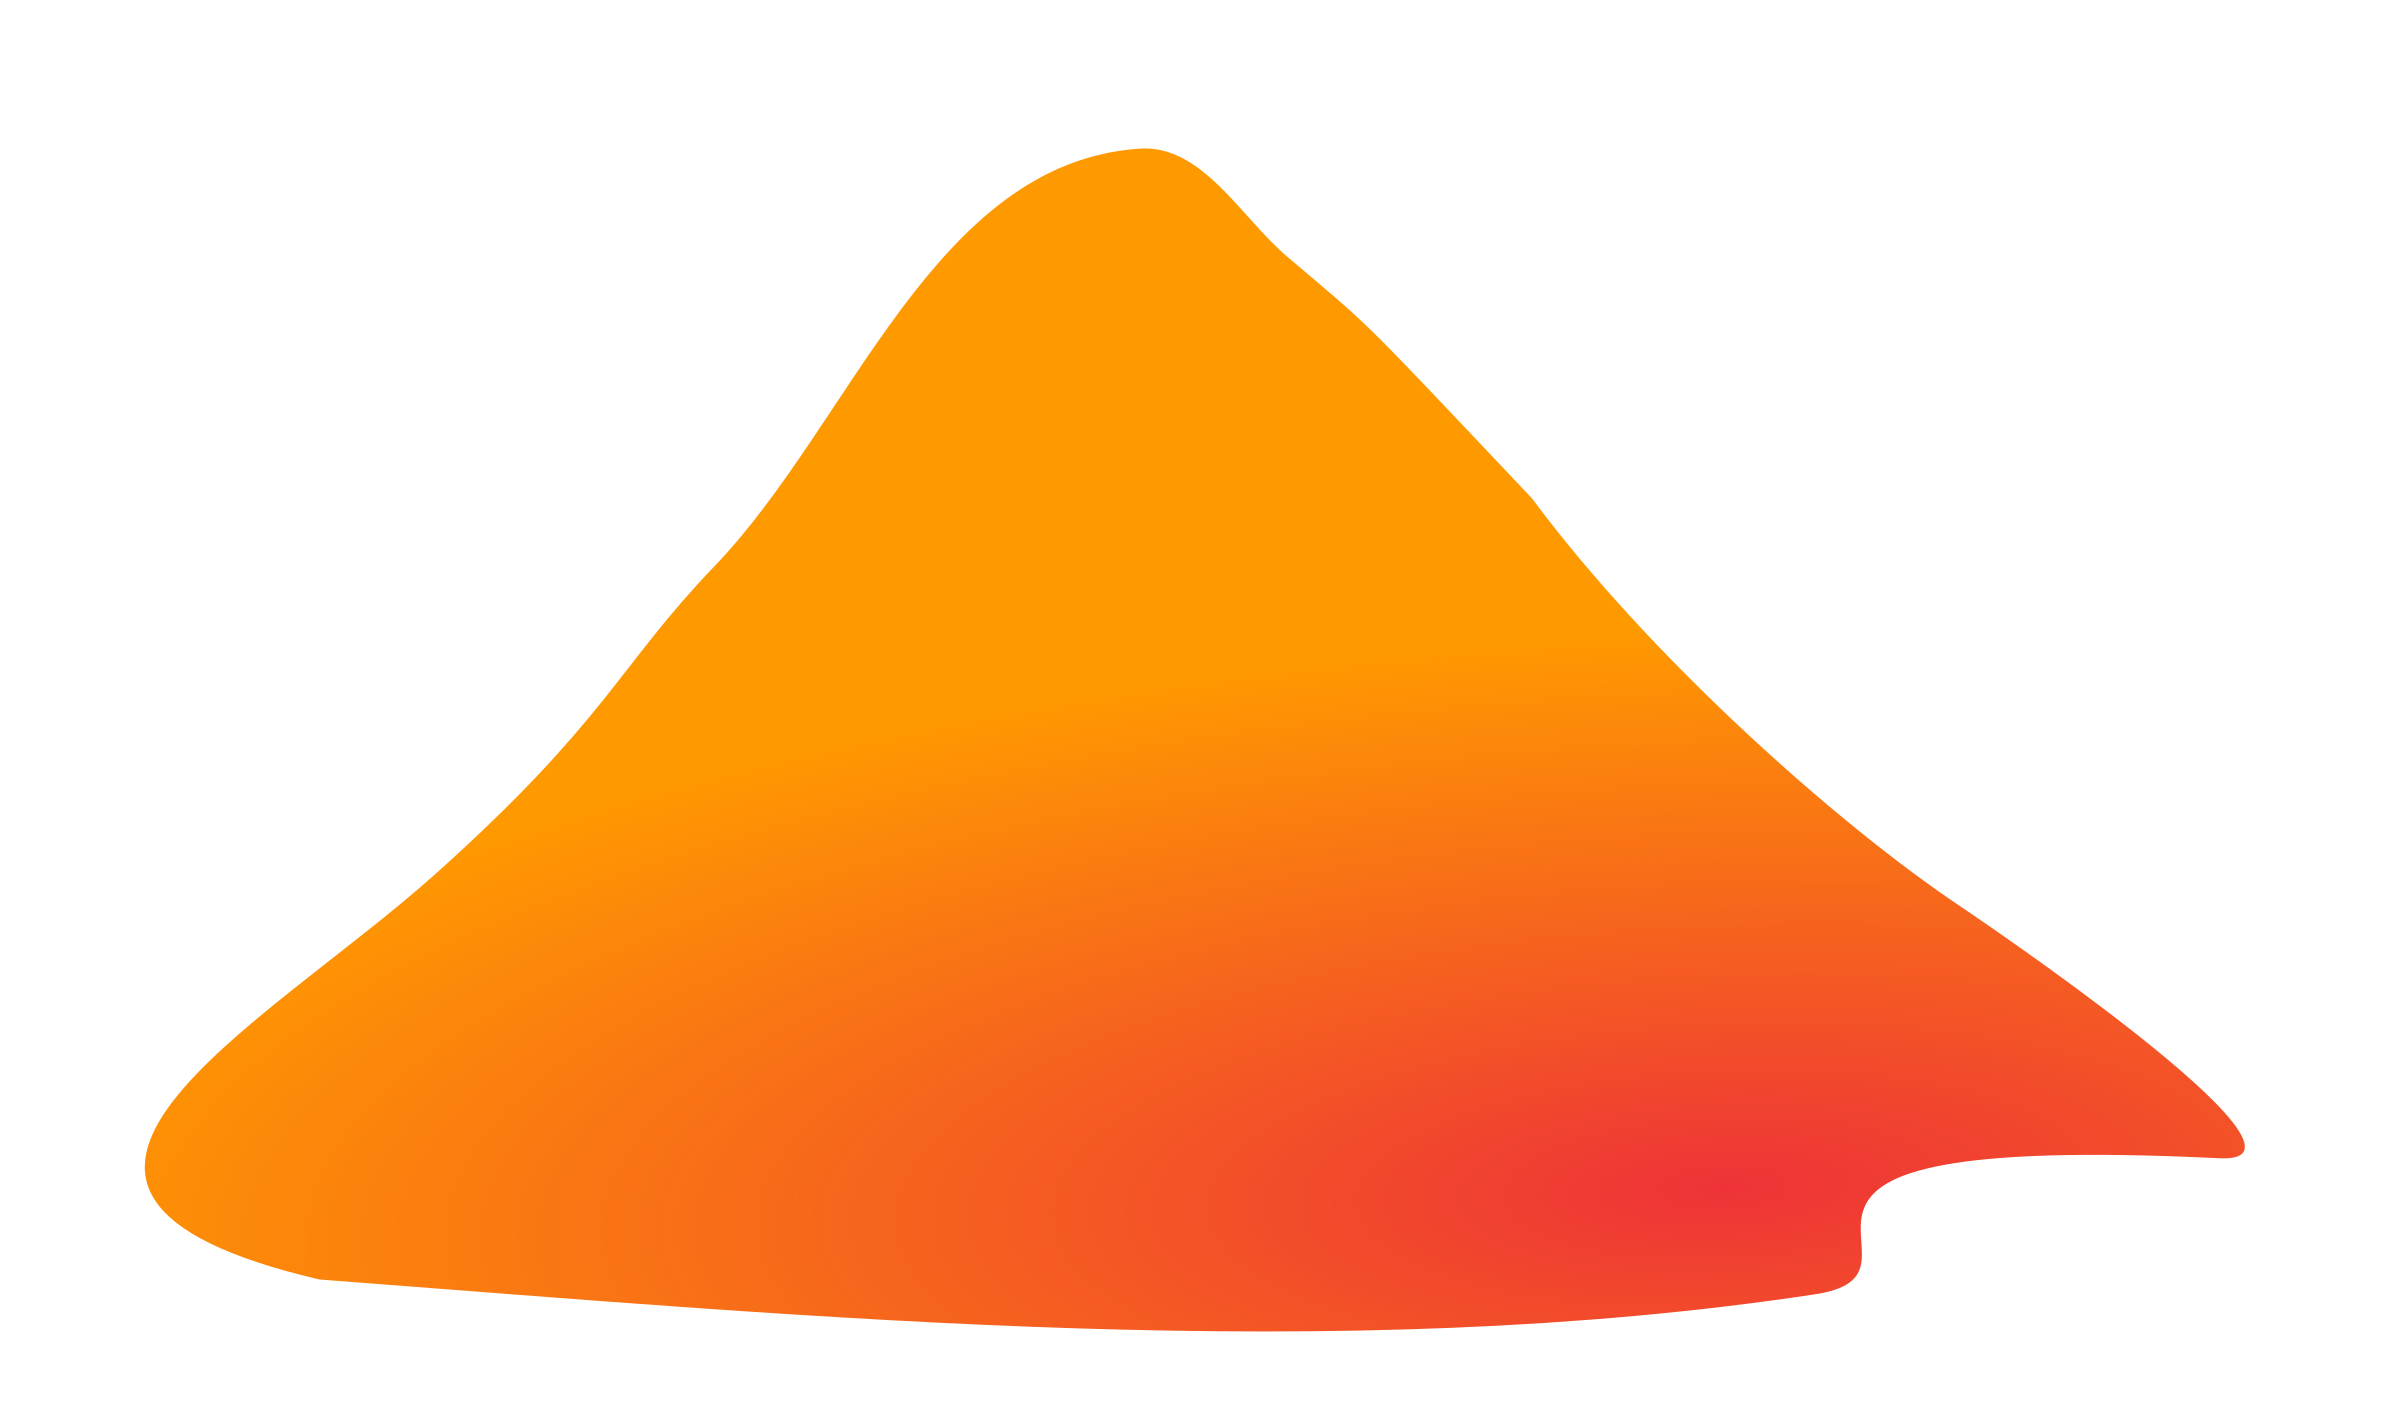 Volcano clip art free clipart images 3 2